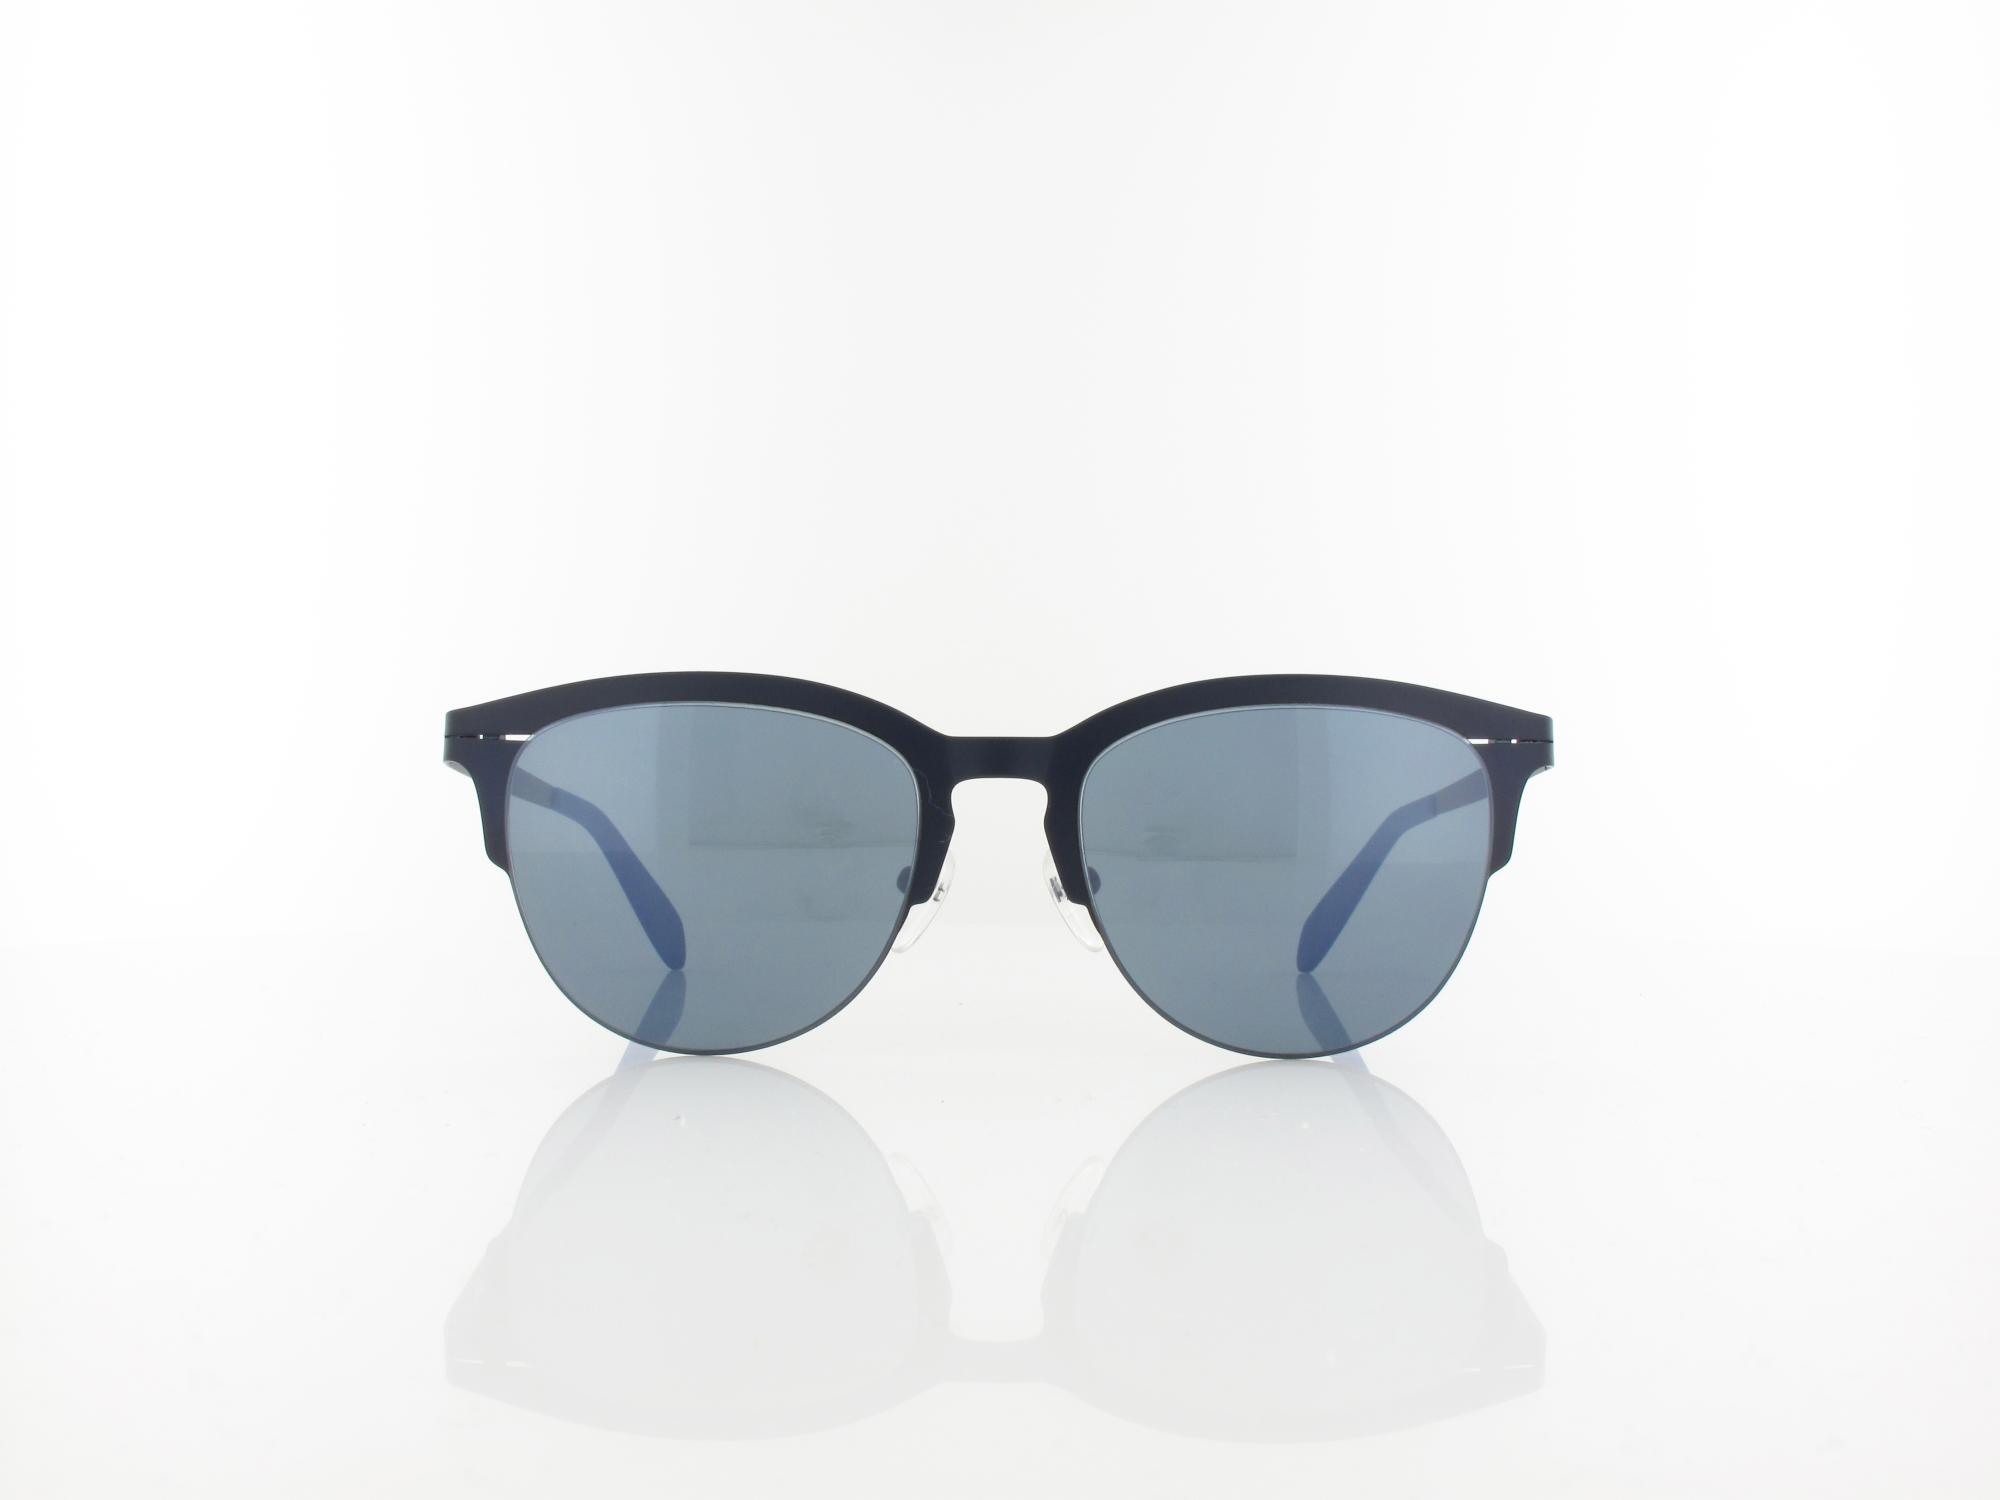 Calvin Klein | CK2140S 438 52 | blue / grey mirror